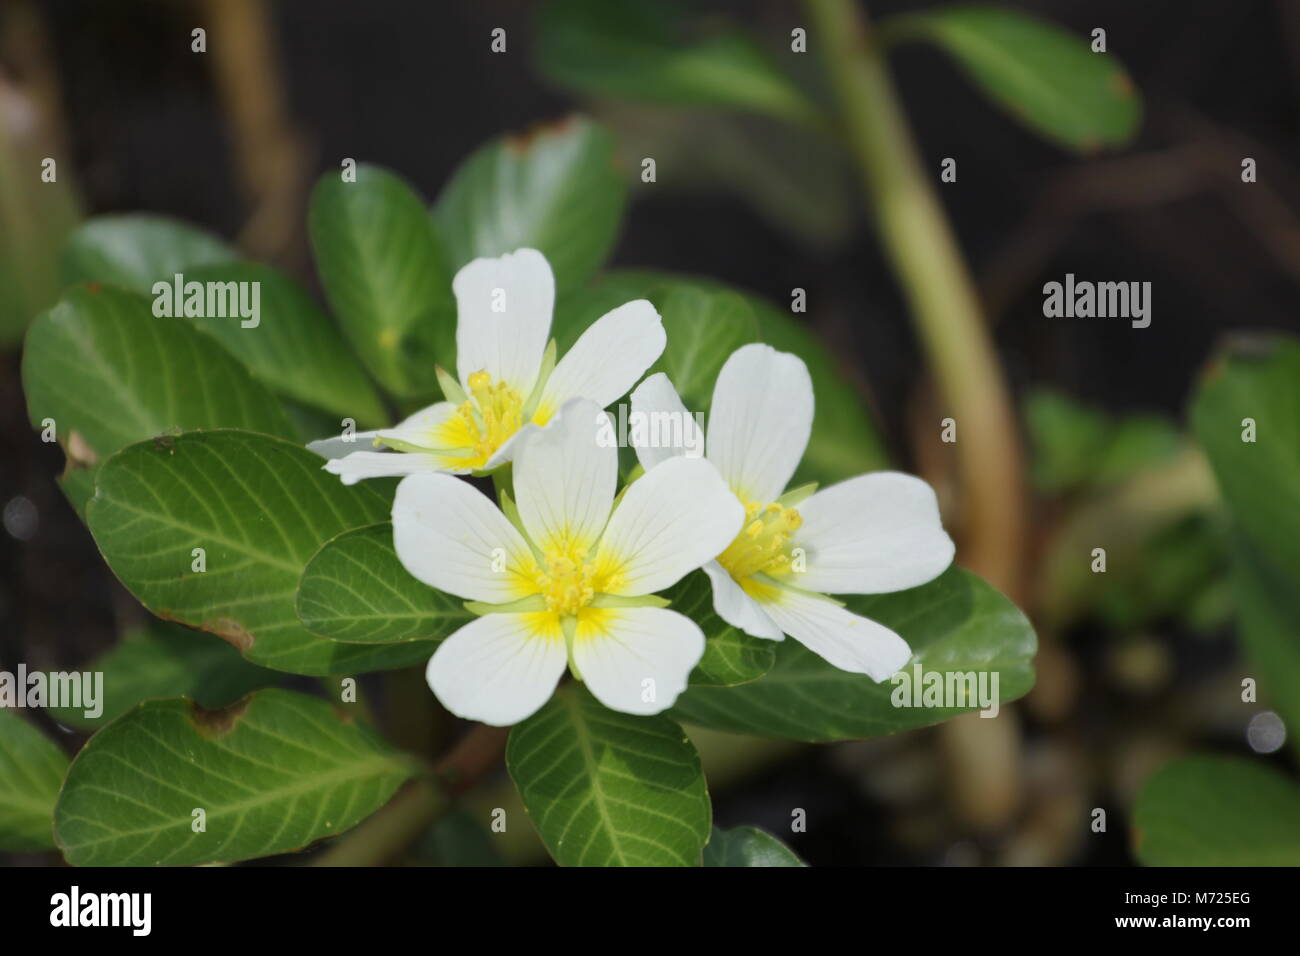 White yellow tropical flowers stock photos white yellow tropical beautiful white yellow tropical flowers stock image mightylinksfo